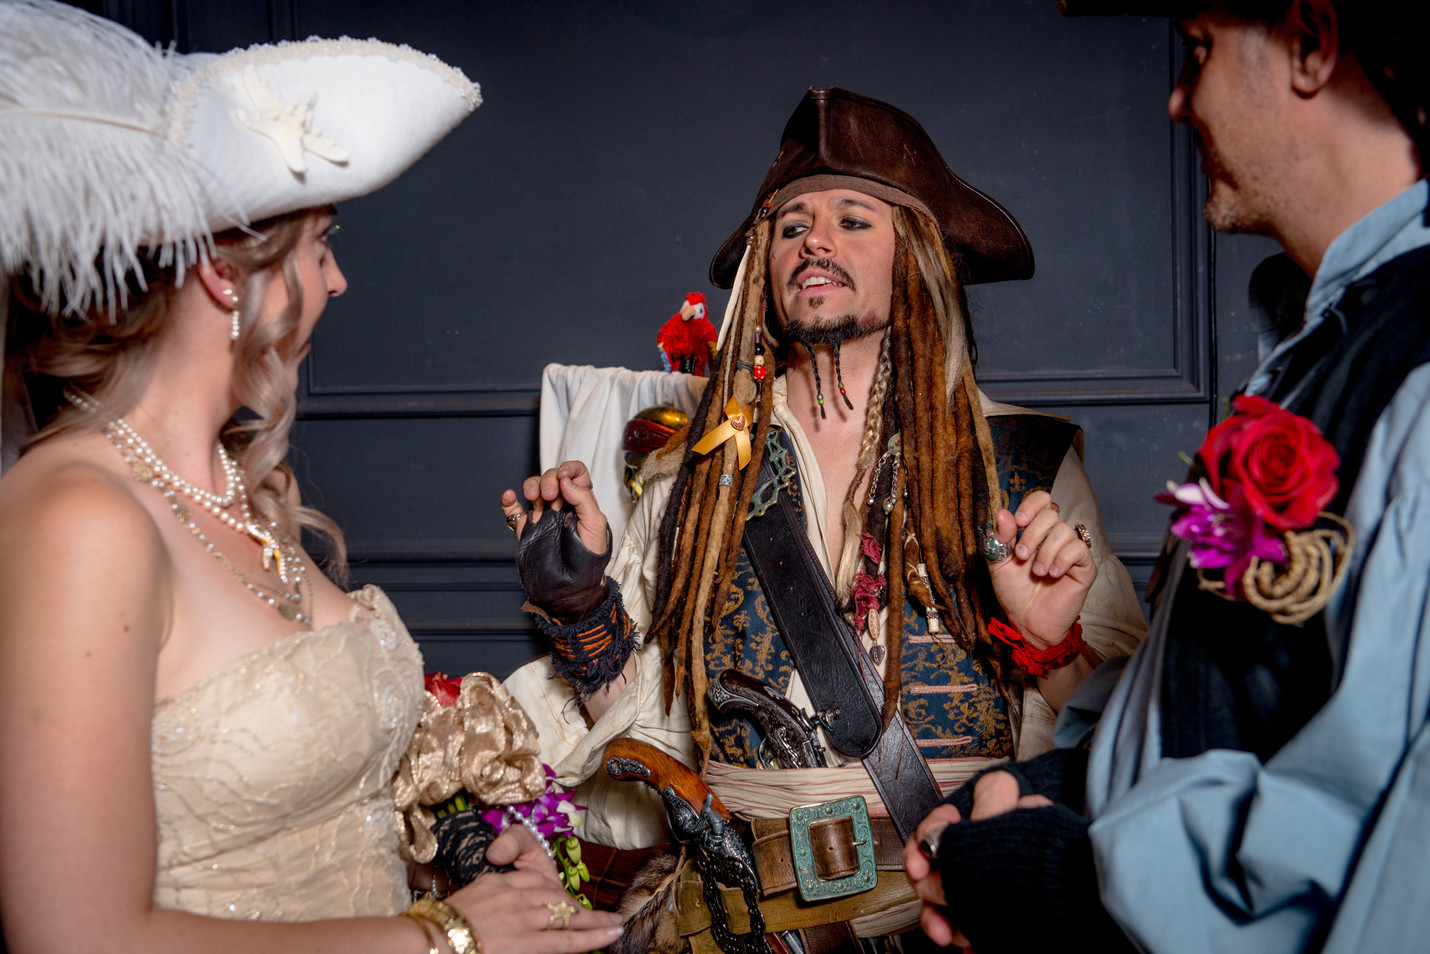 Pirate Themed Wedding - Captain Jack is a Priest!